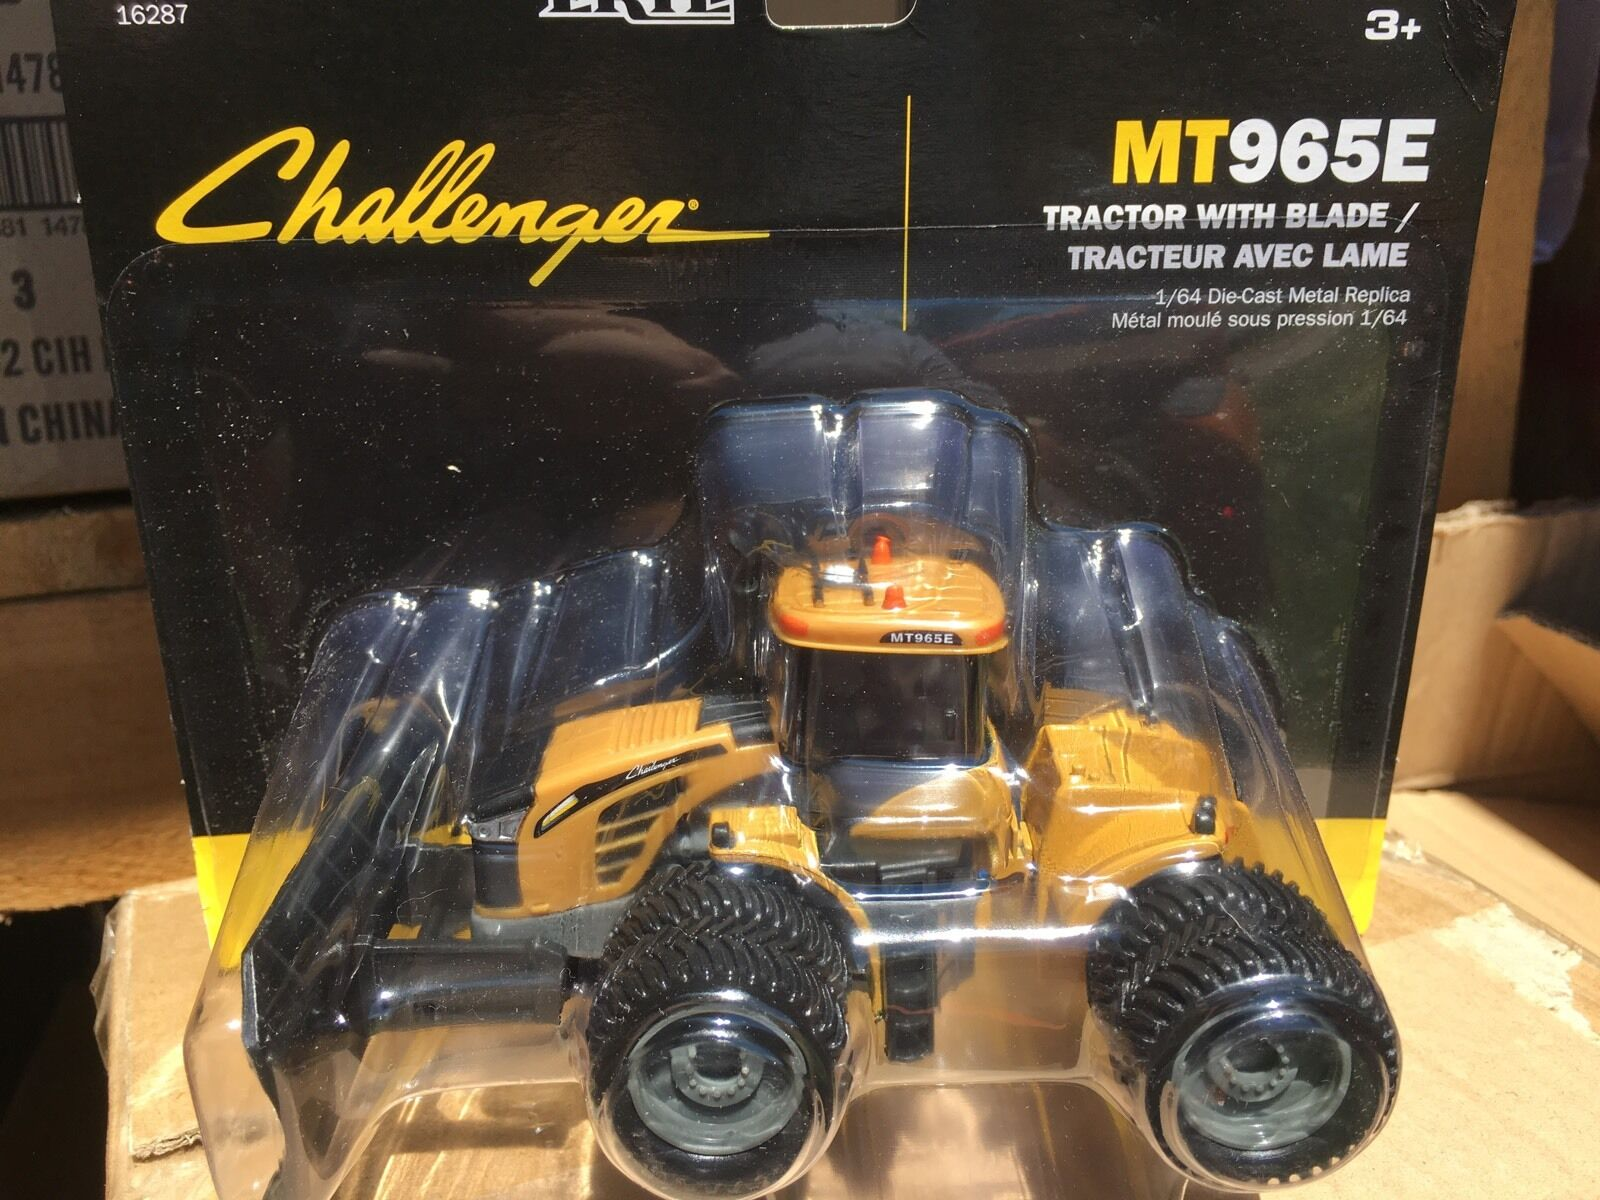 ERTL 1:64 Challenger Challenger Challenger MT965E 4WD Tractor   w/  Front Blade. 25d292